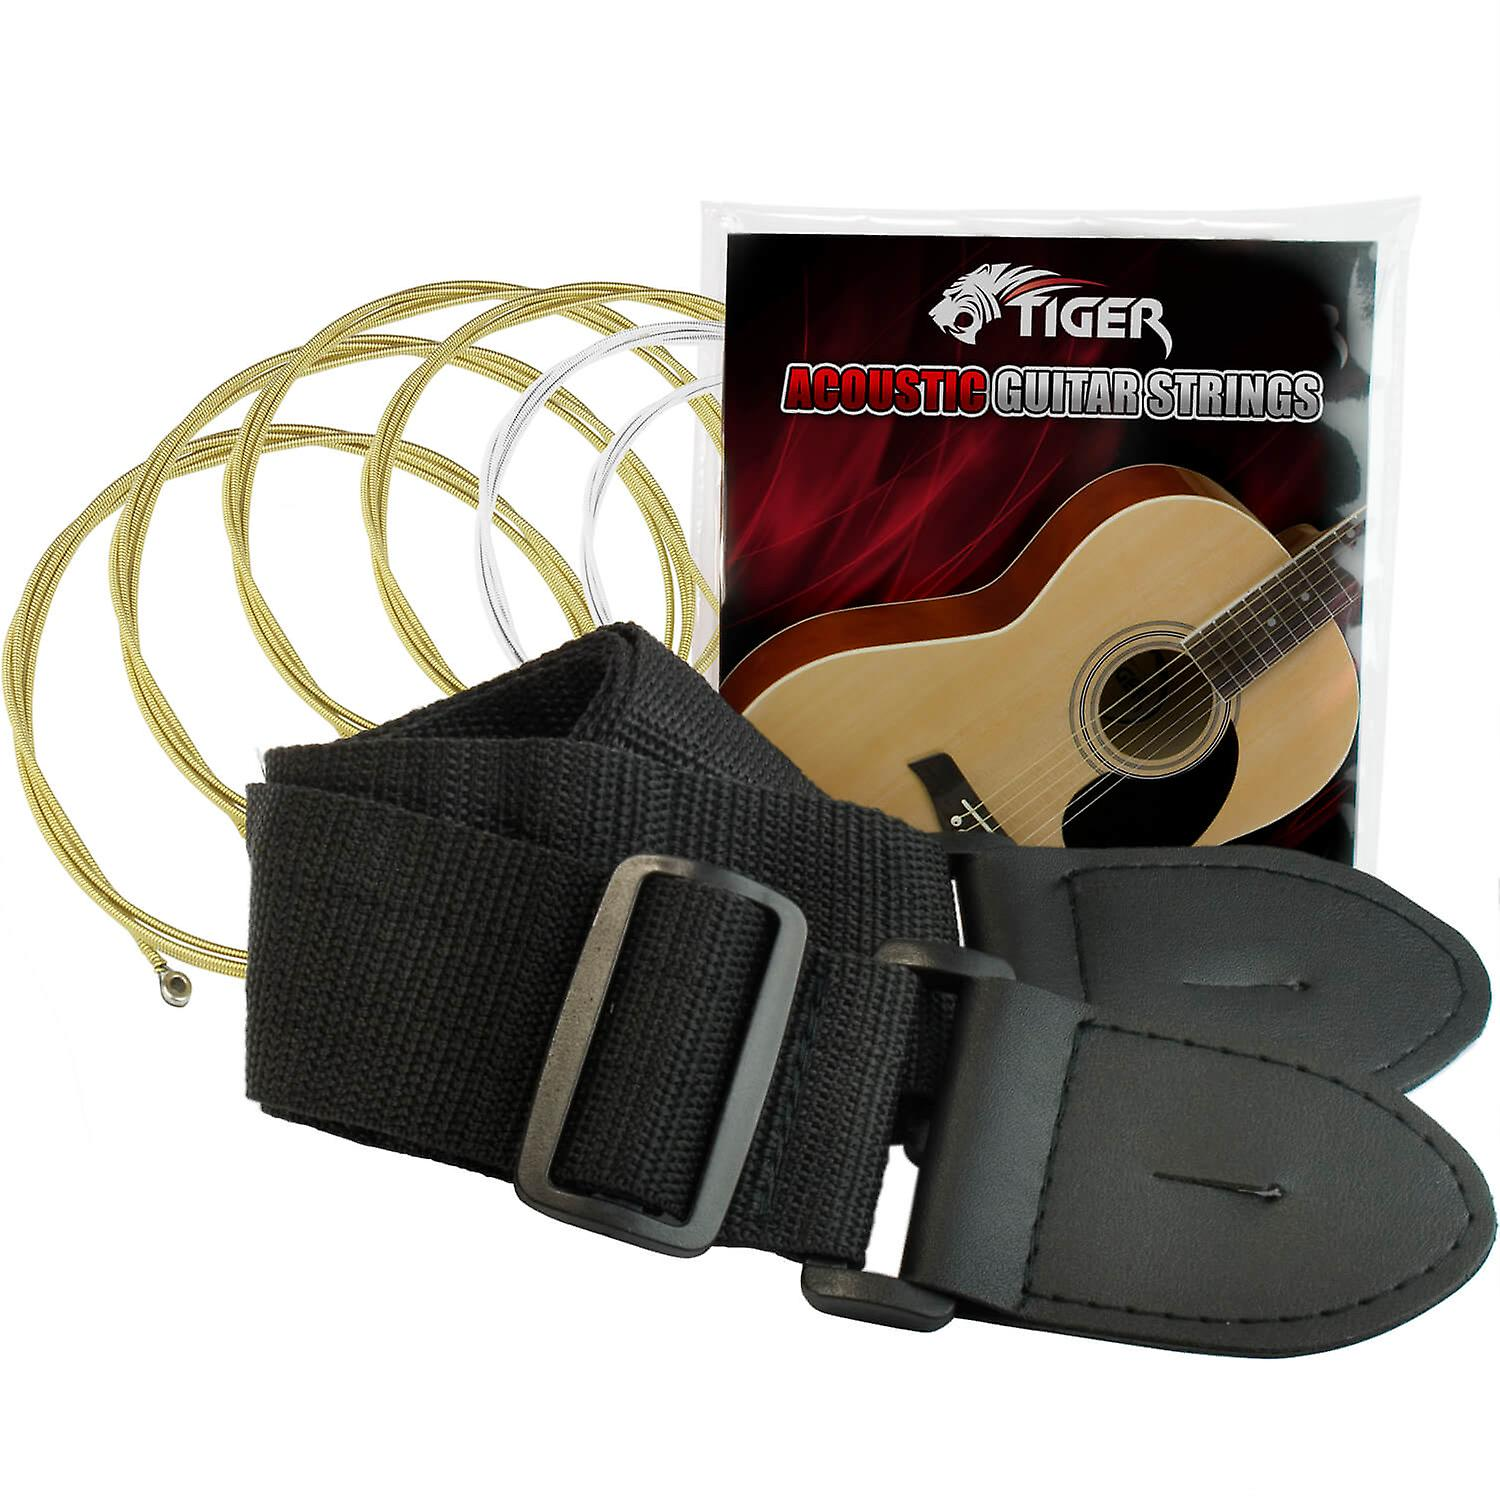 Tiger Acoustic Guitar Package for Beginners - Red